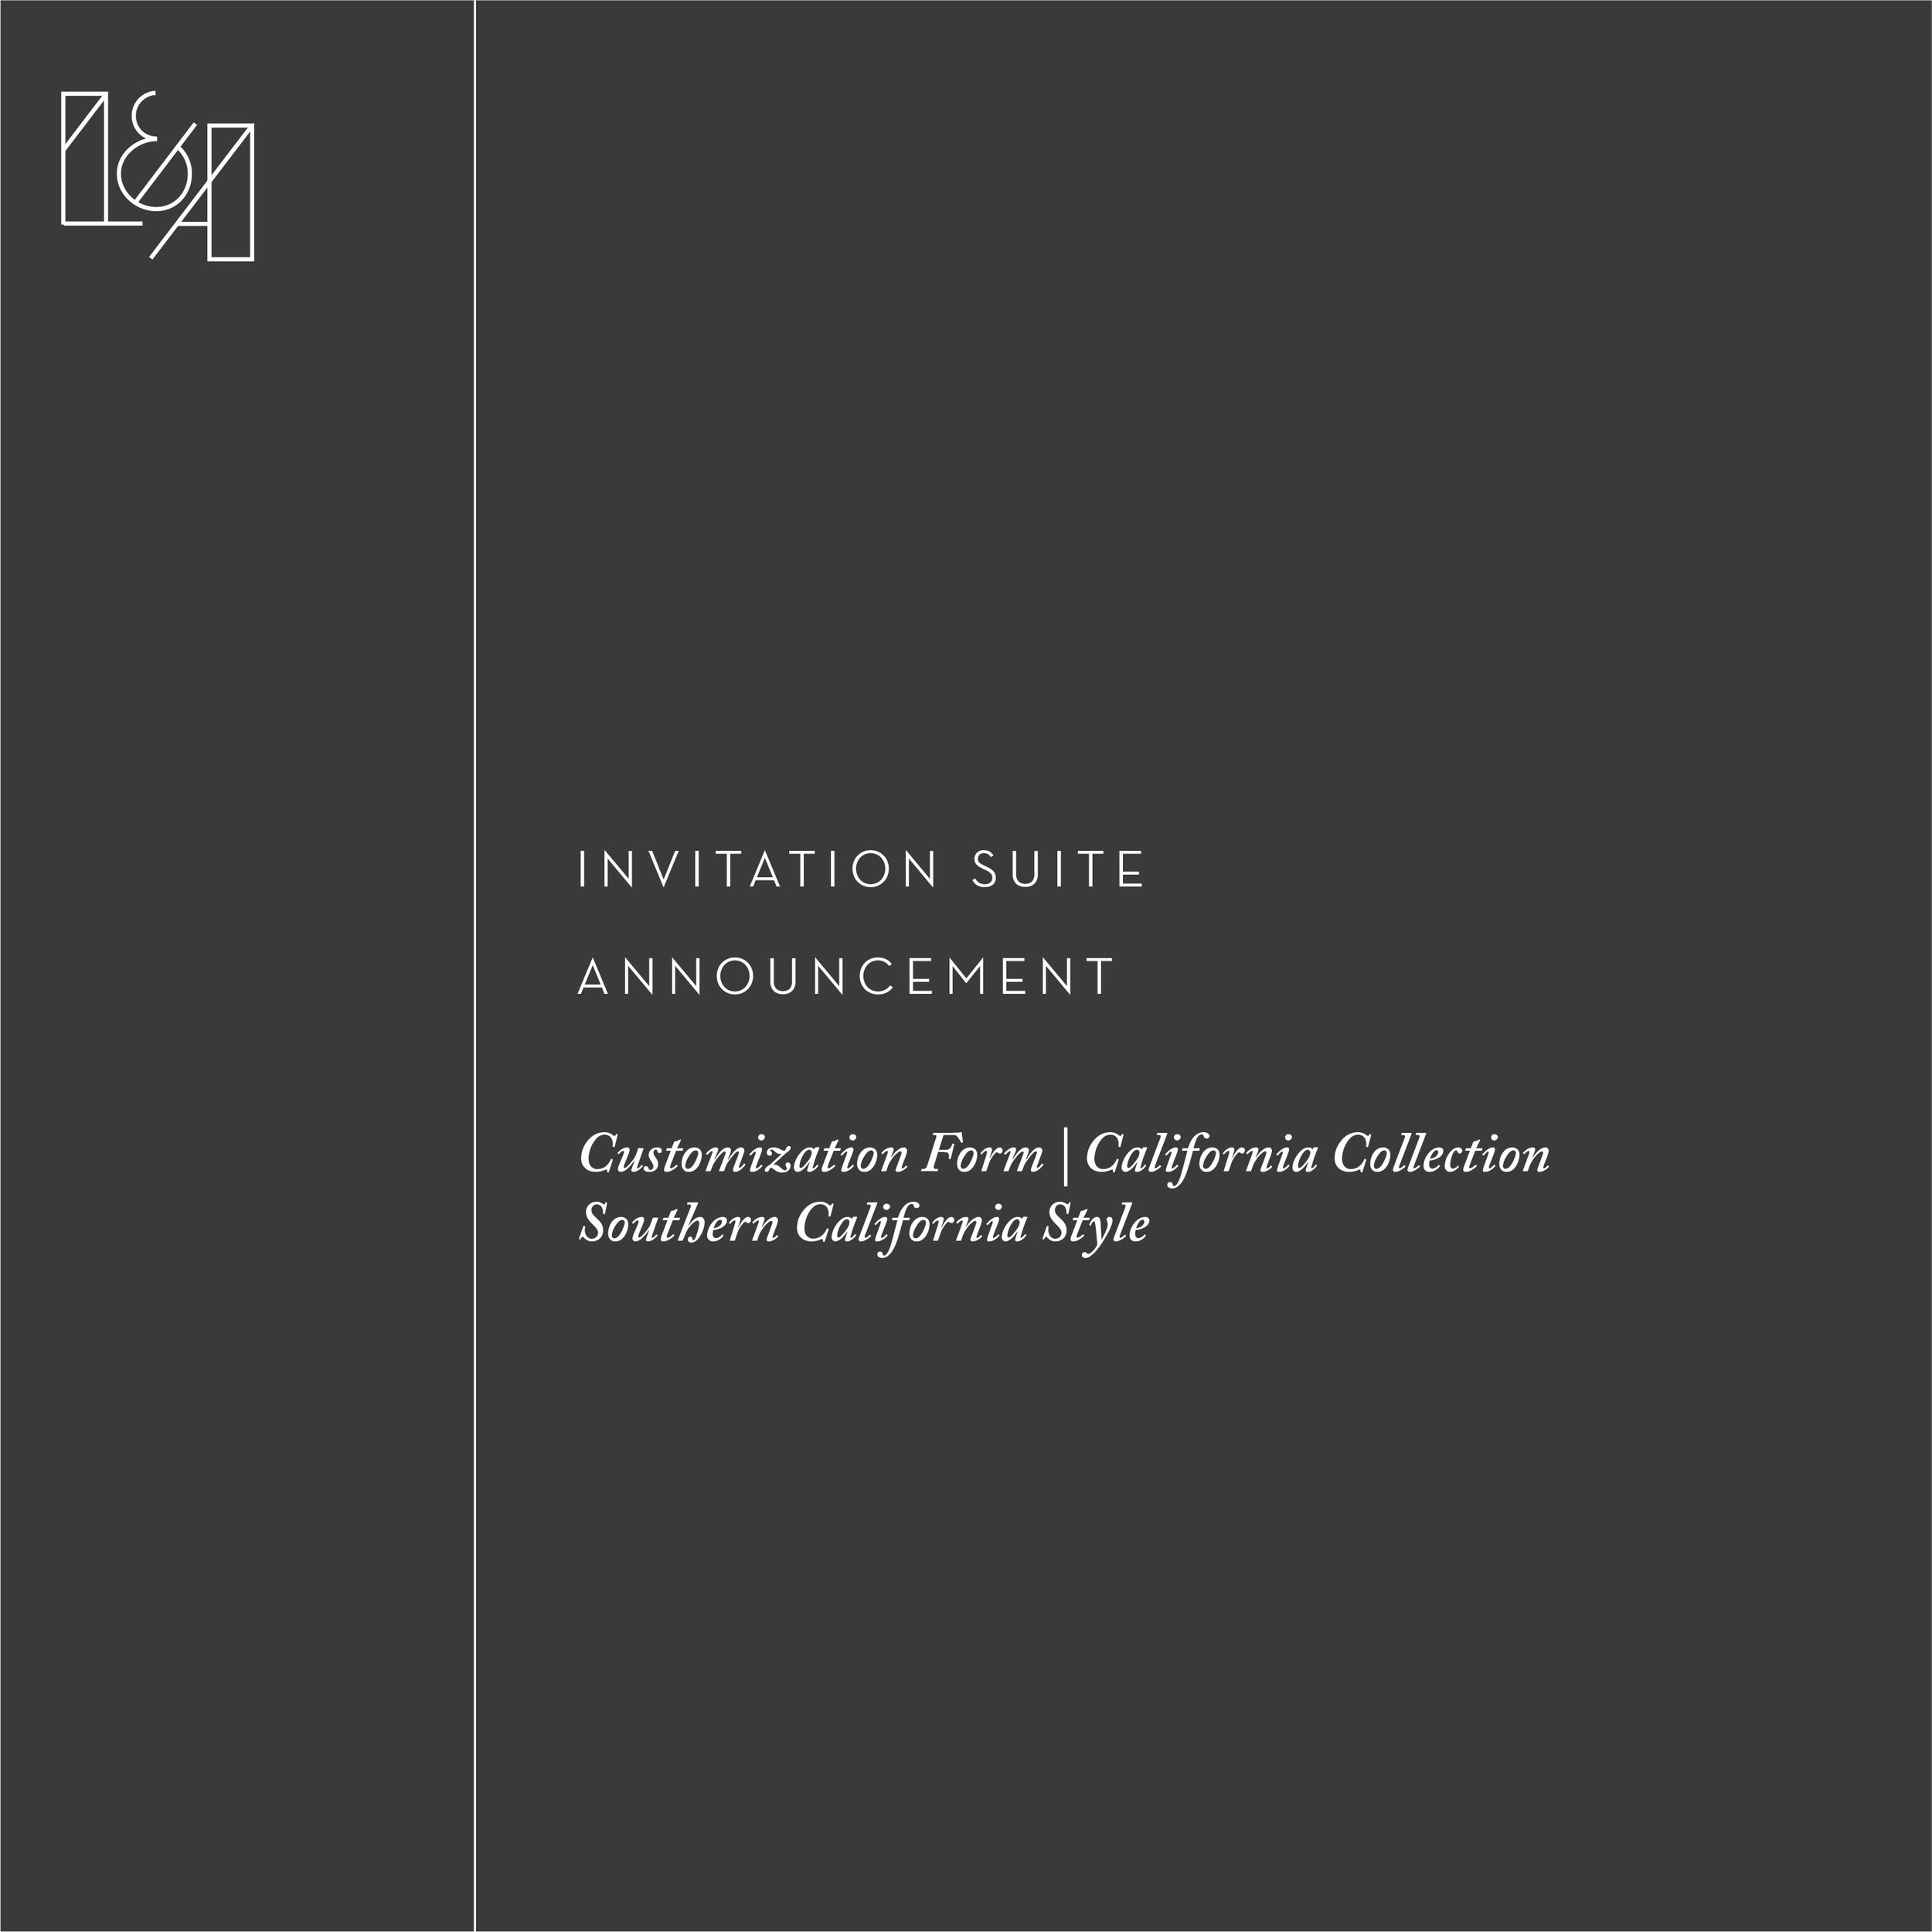 SC customization intros invitation suite-20.png